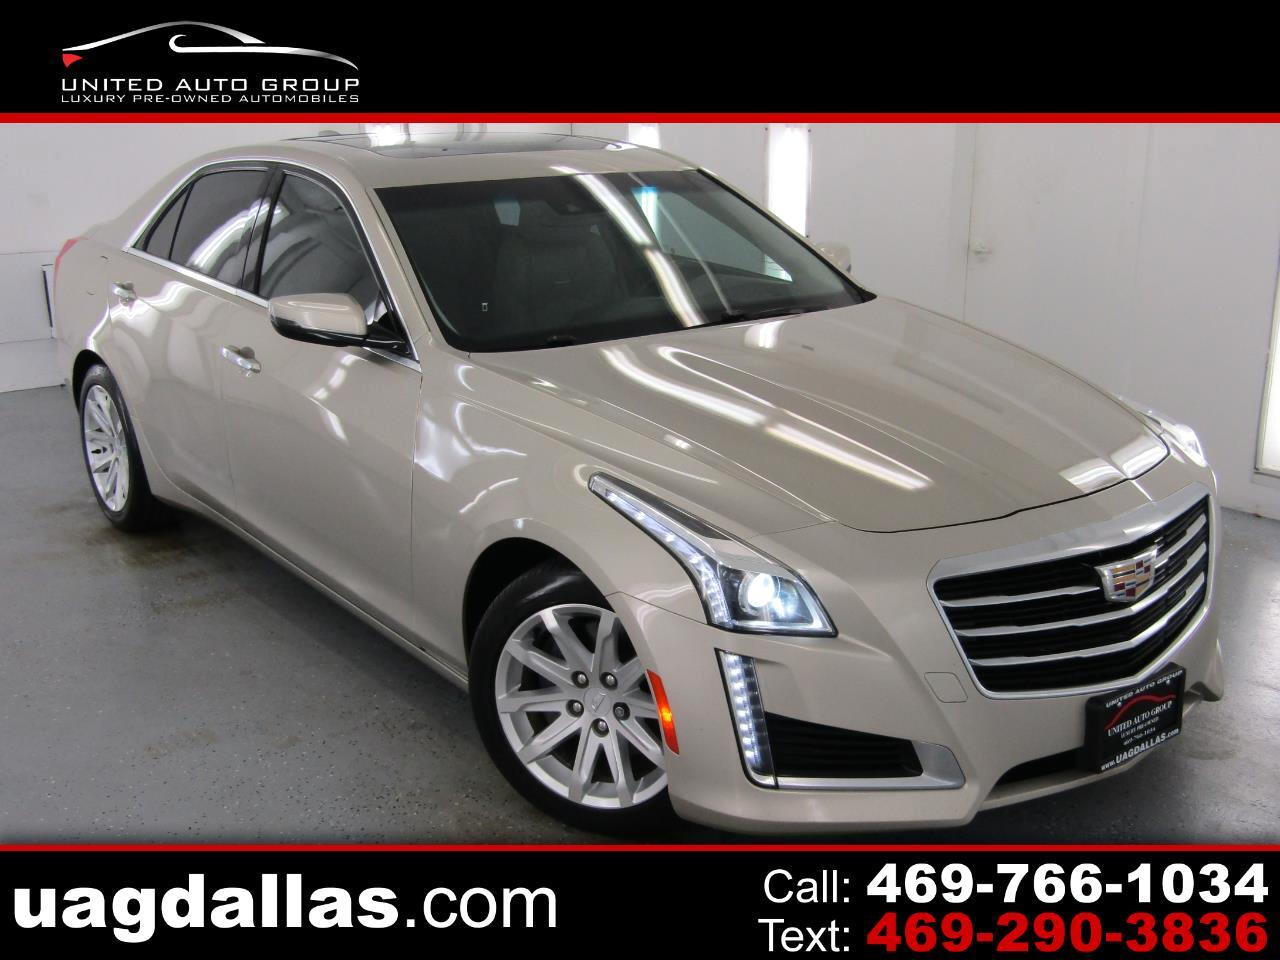 Cadillac CTS Sedan 4dr Sdn 3.6L Luxury RWD 2015